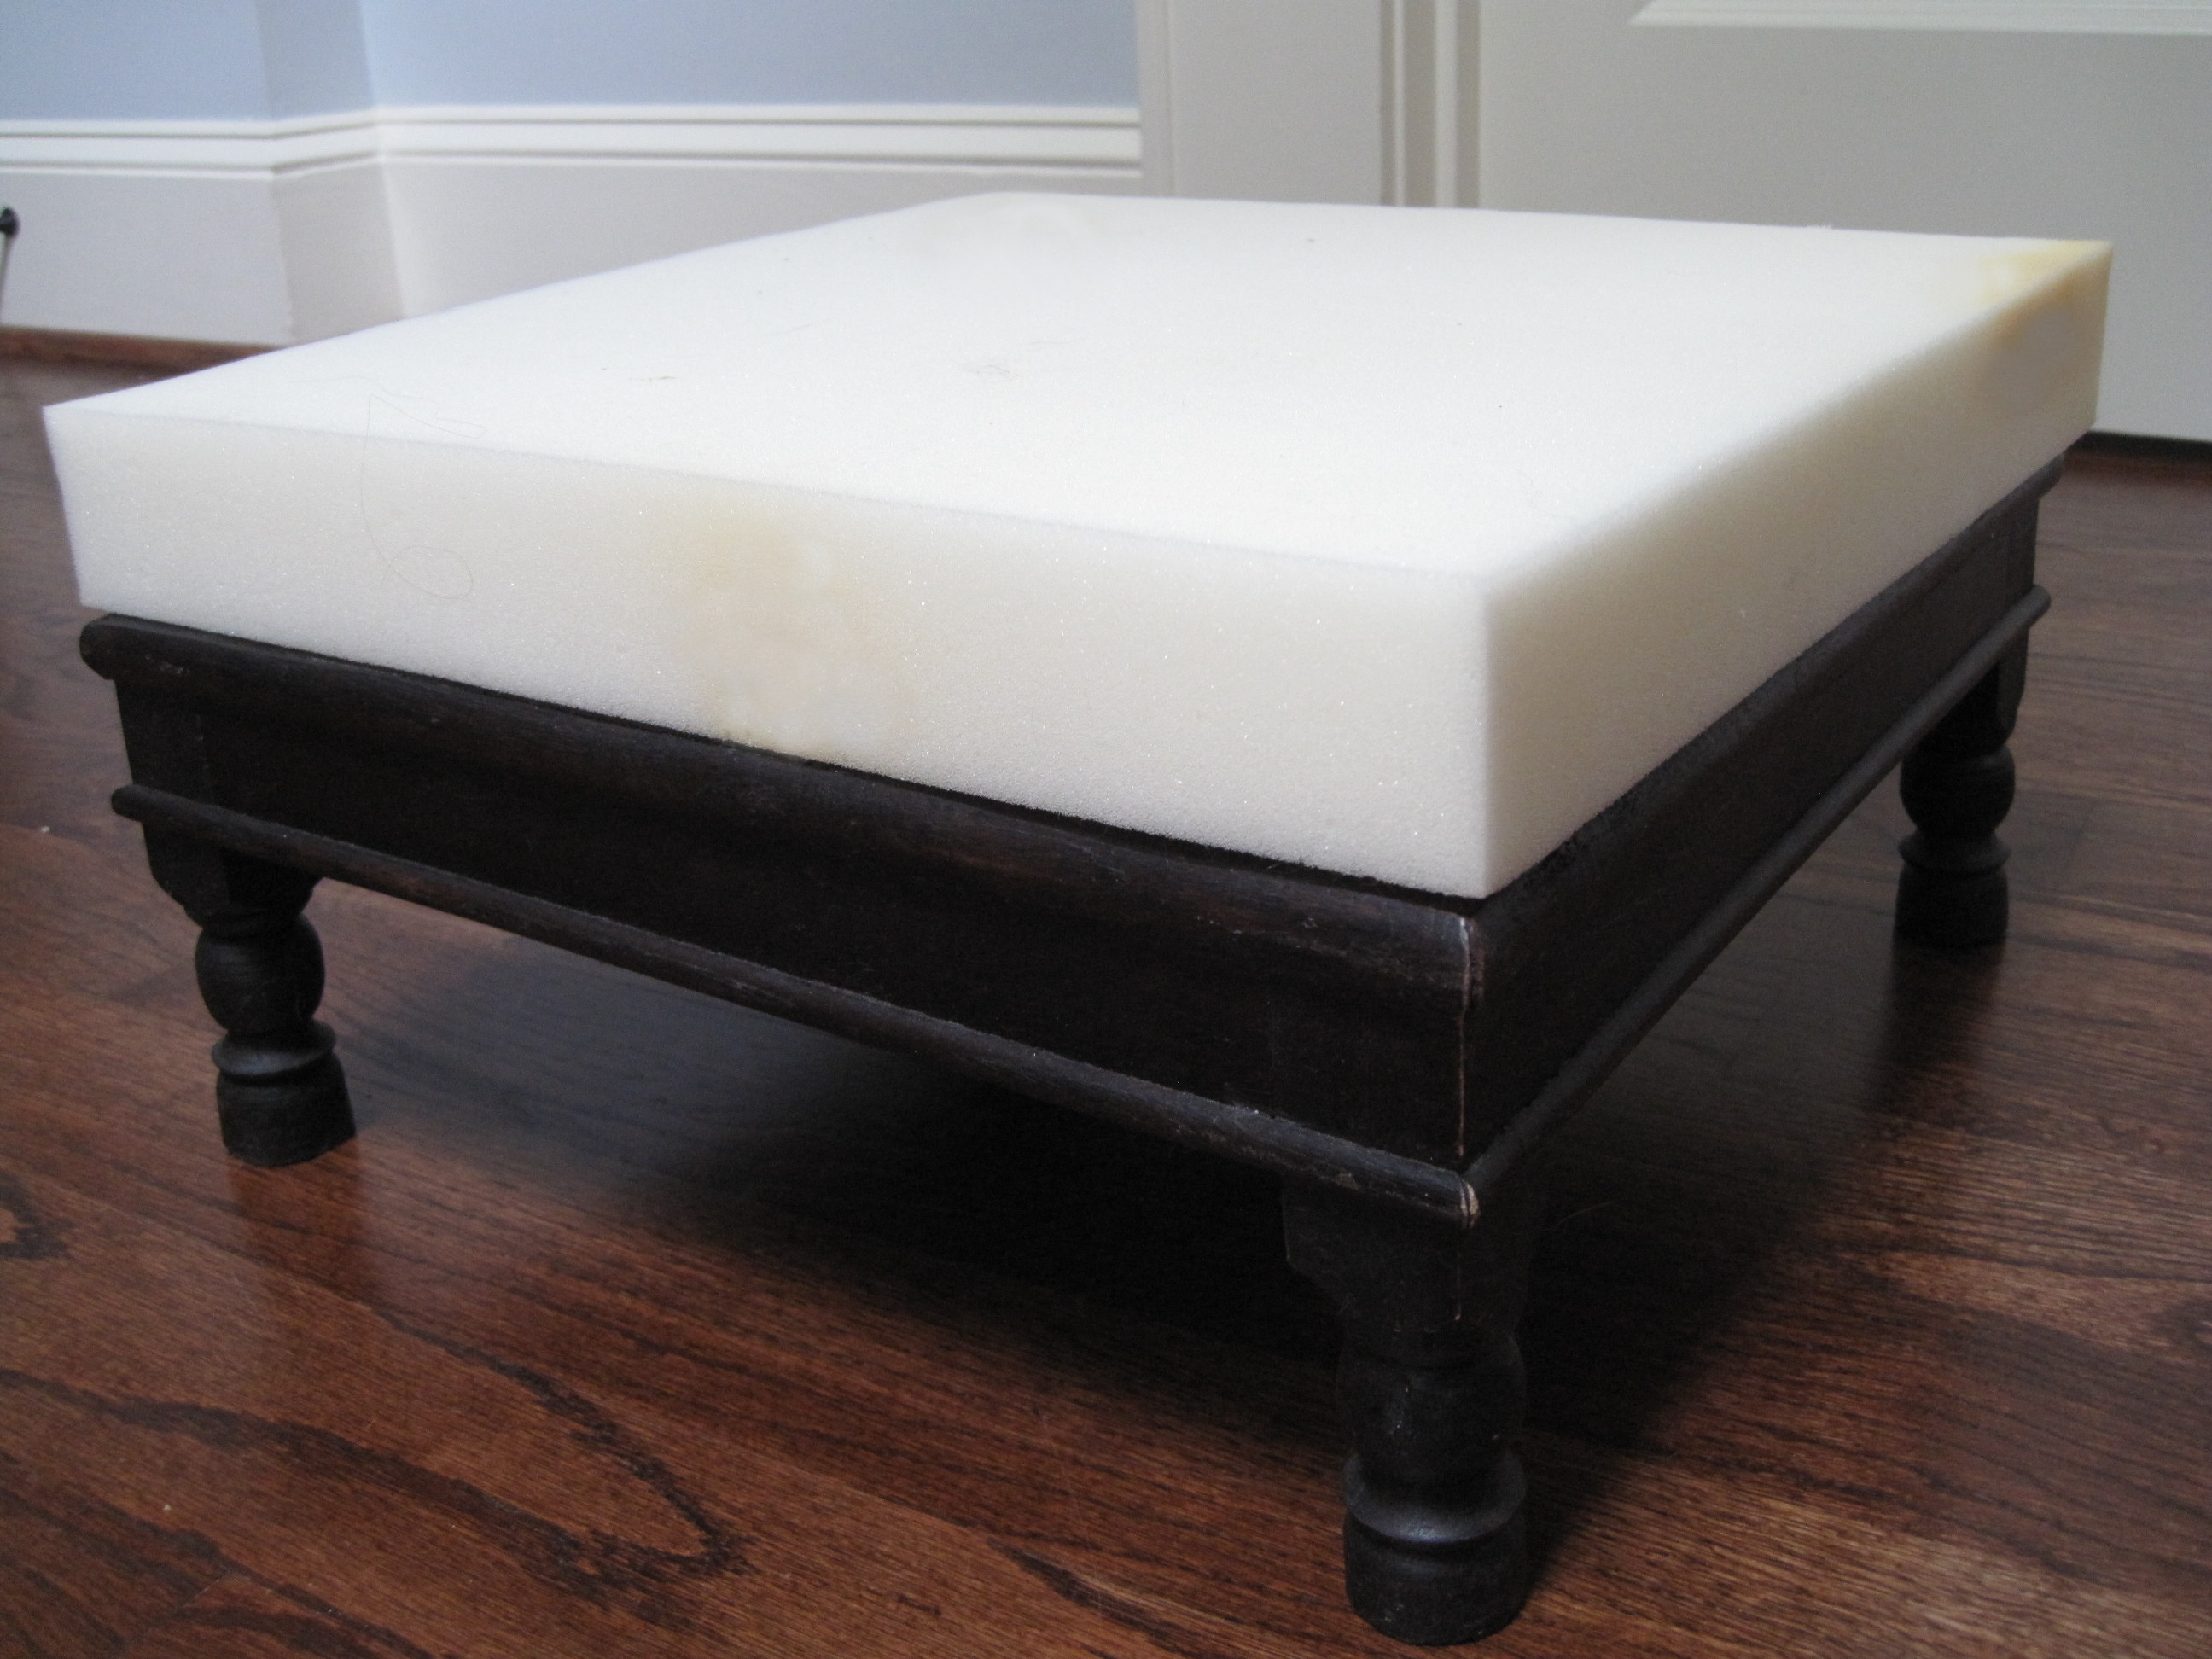 Diy A No Sew Upholstered Footstool Tamara Heather Interior Design With Regard To Upholstered Footstools (Image 3 of 15)